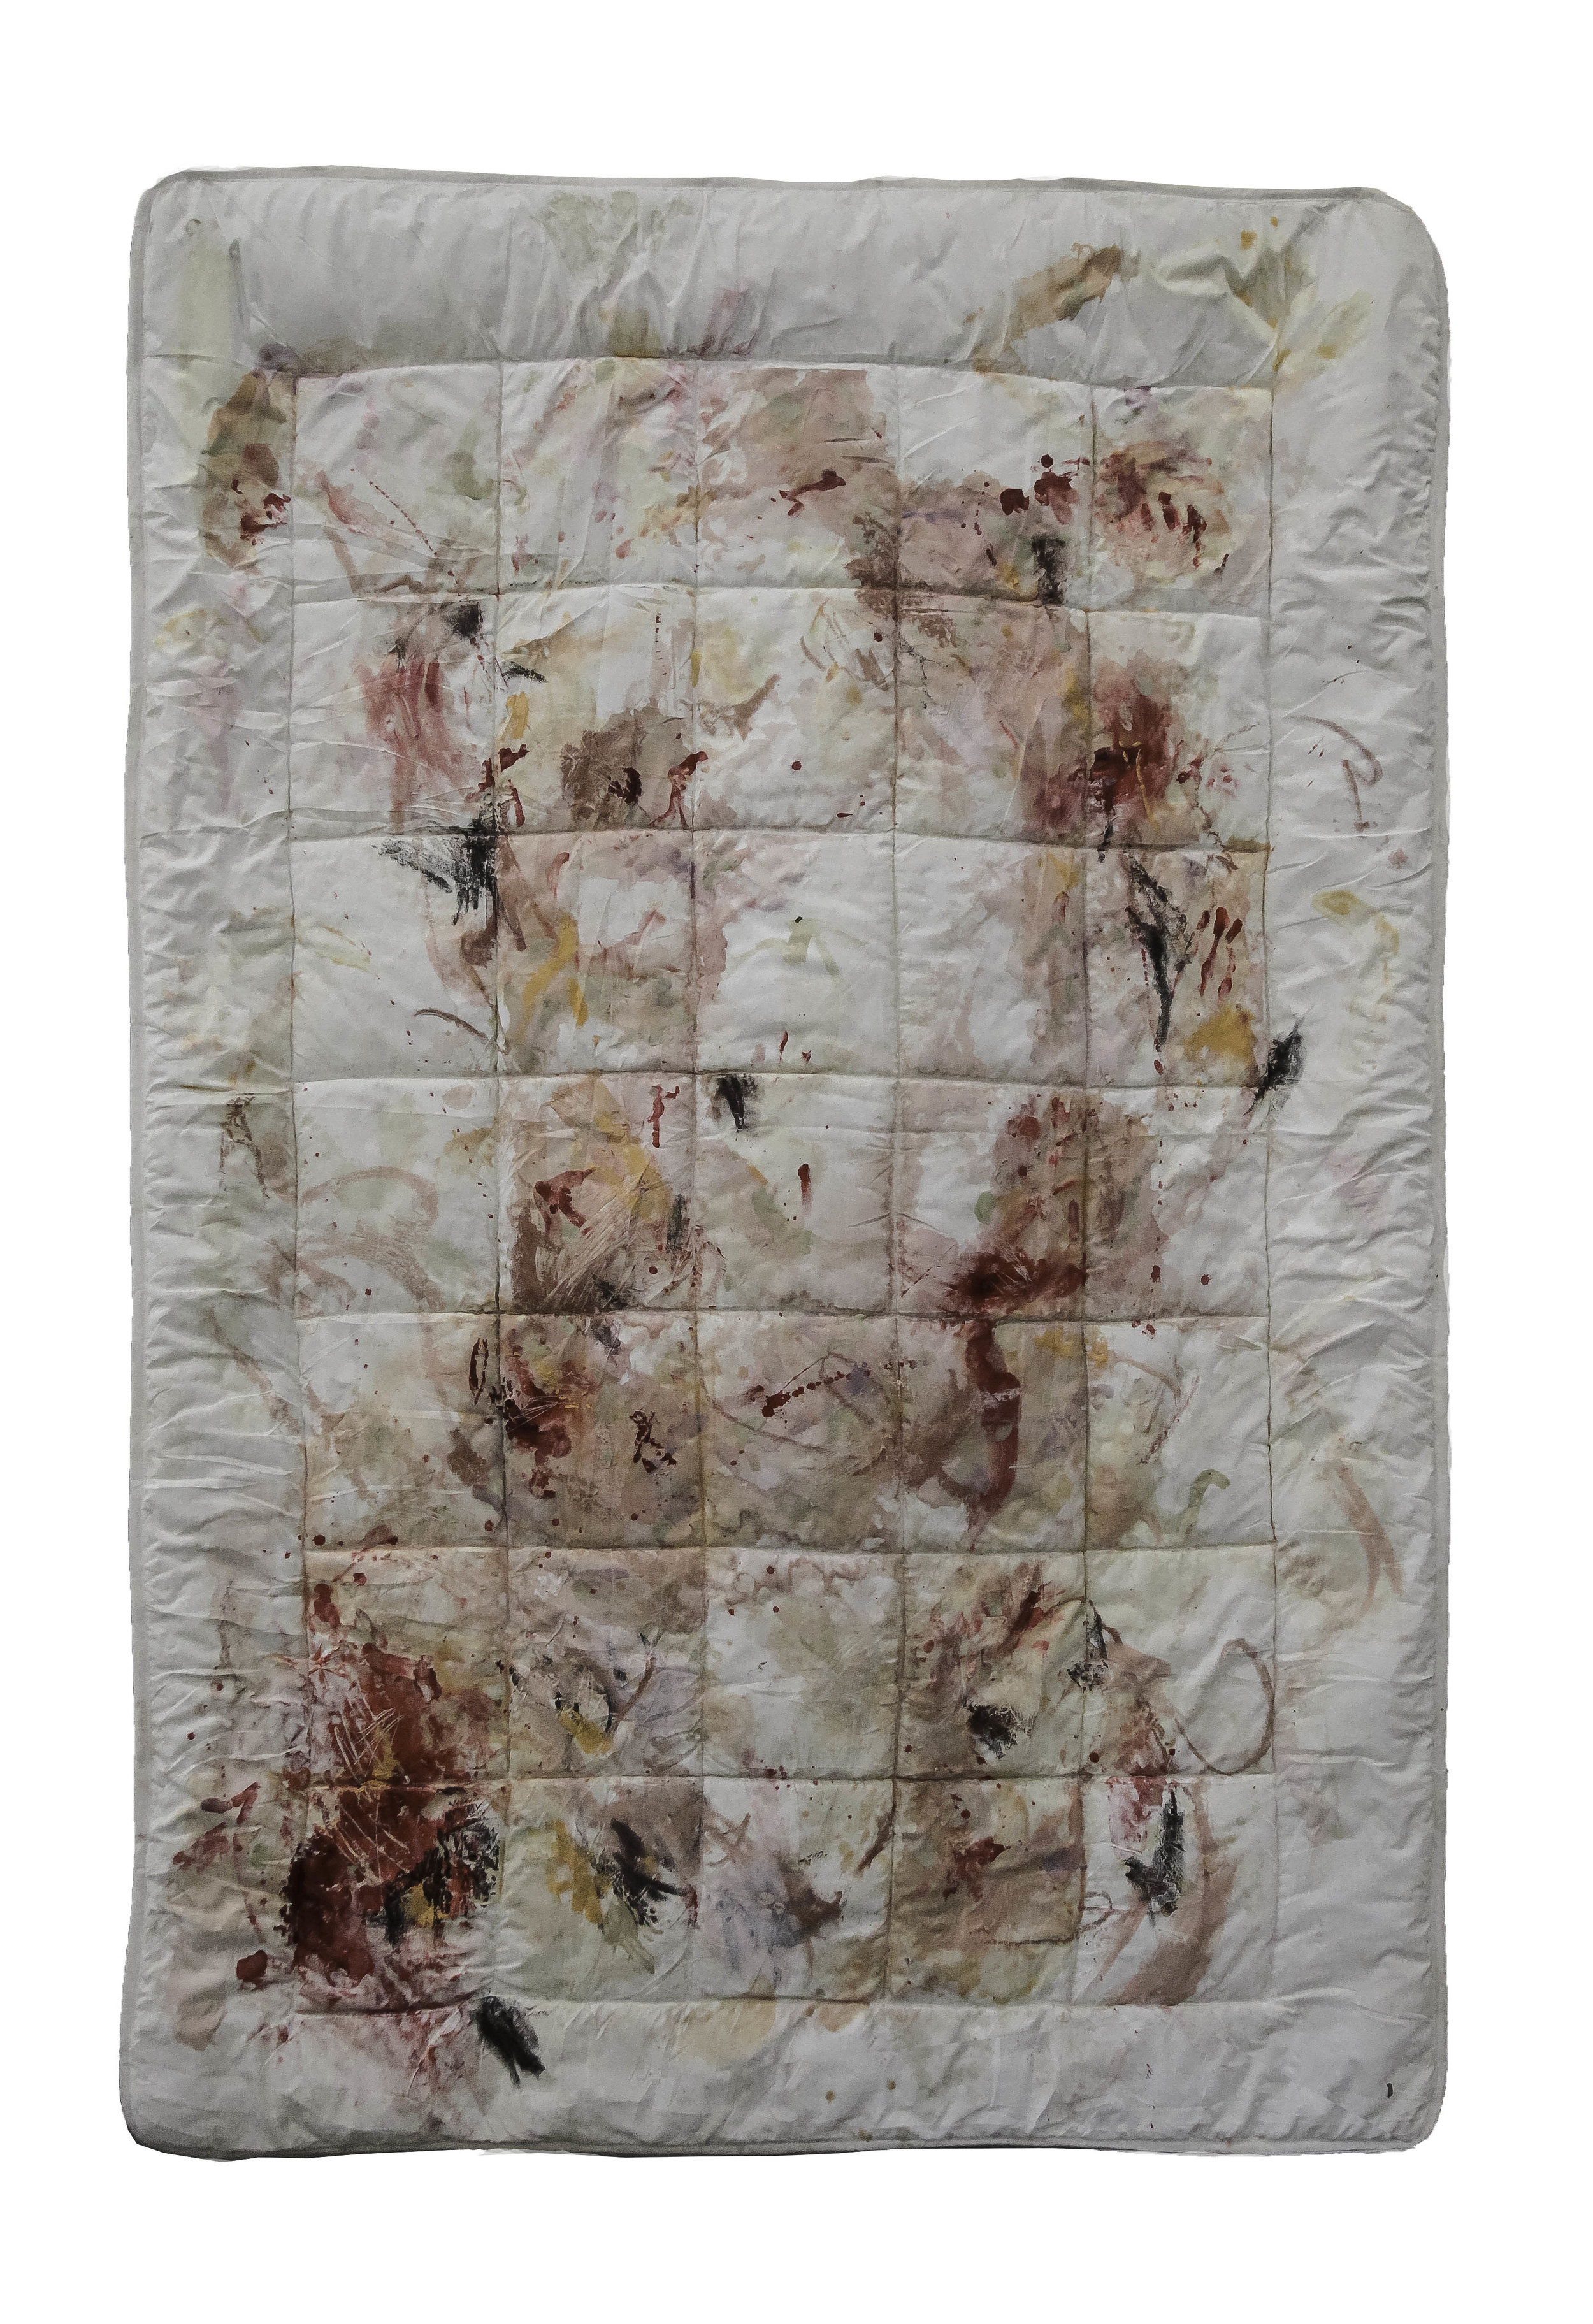 Covers , 2016. Wax and ink, encaustic,  blood on used bed cover,  53 x 78 inches (135 x 200 cm).